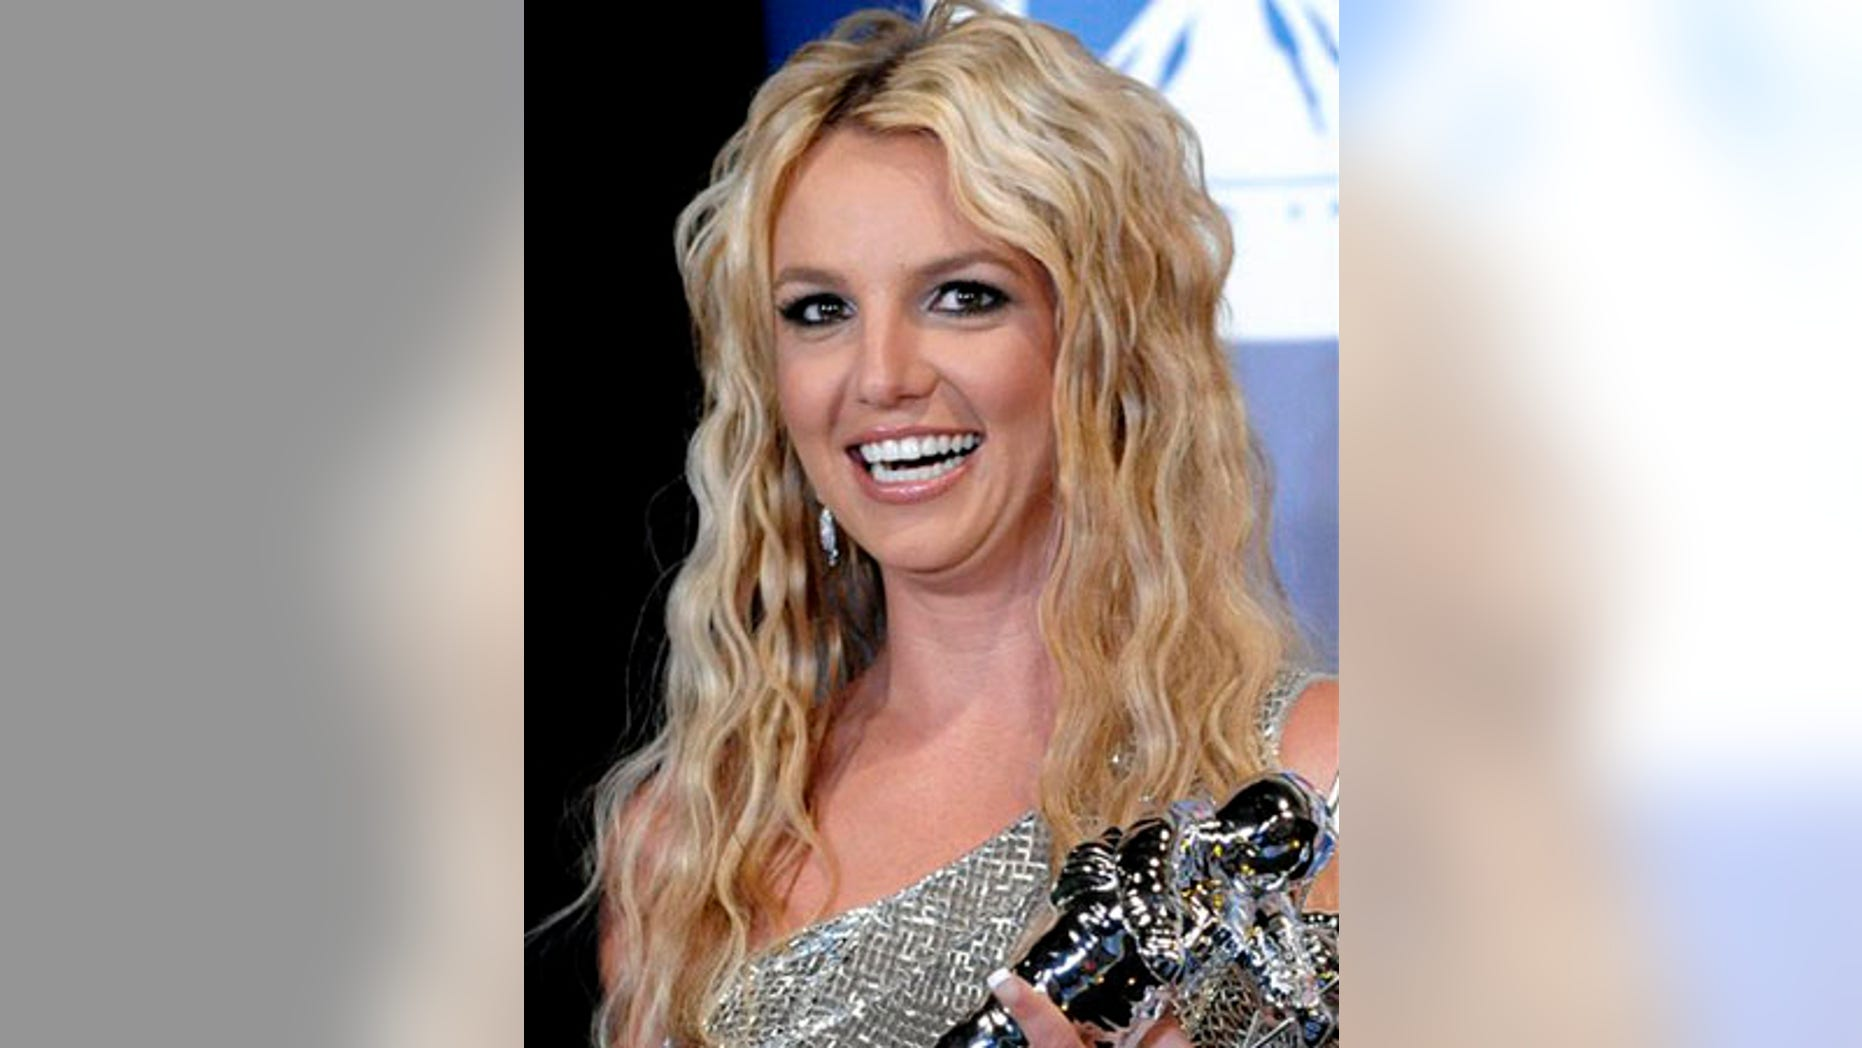 ** FILE ** In this Sept. 7, 2008 file photo, Britney Spears poses with her awards backstage at the 2008 MTV Video Music Awards in Los Angeles. (AP Photo/Chris Pizzello, file)